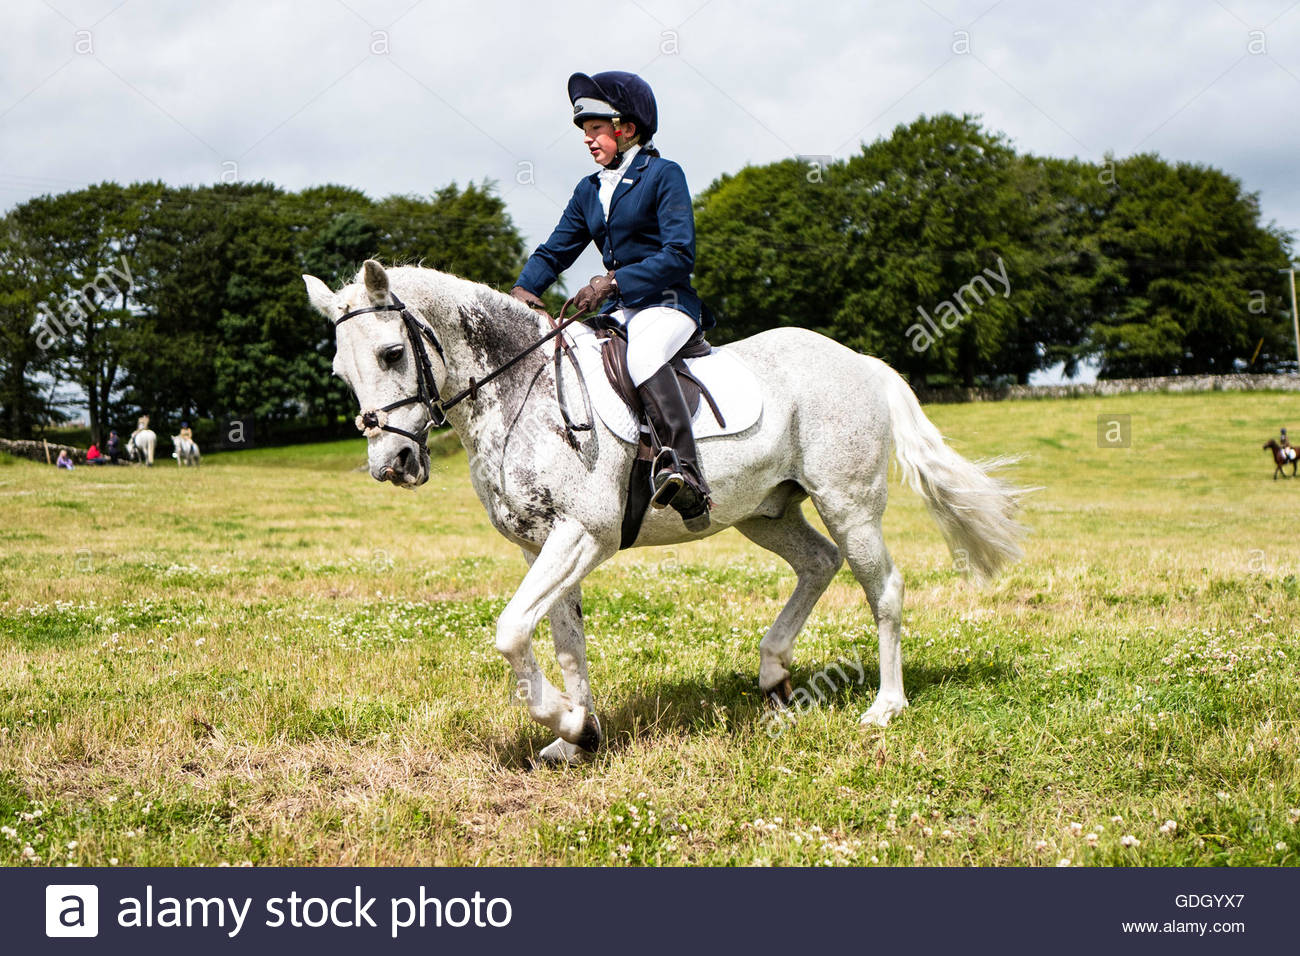 ISEC, Selkirk, Scottish Borders, UK. 16th July 2016. A young girl on a grey pony at the Ian Stark Equestrian Centre - Stock Image